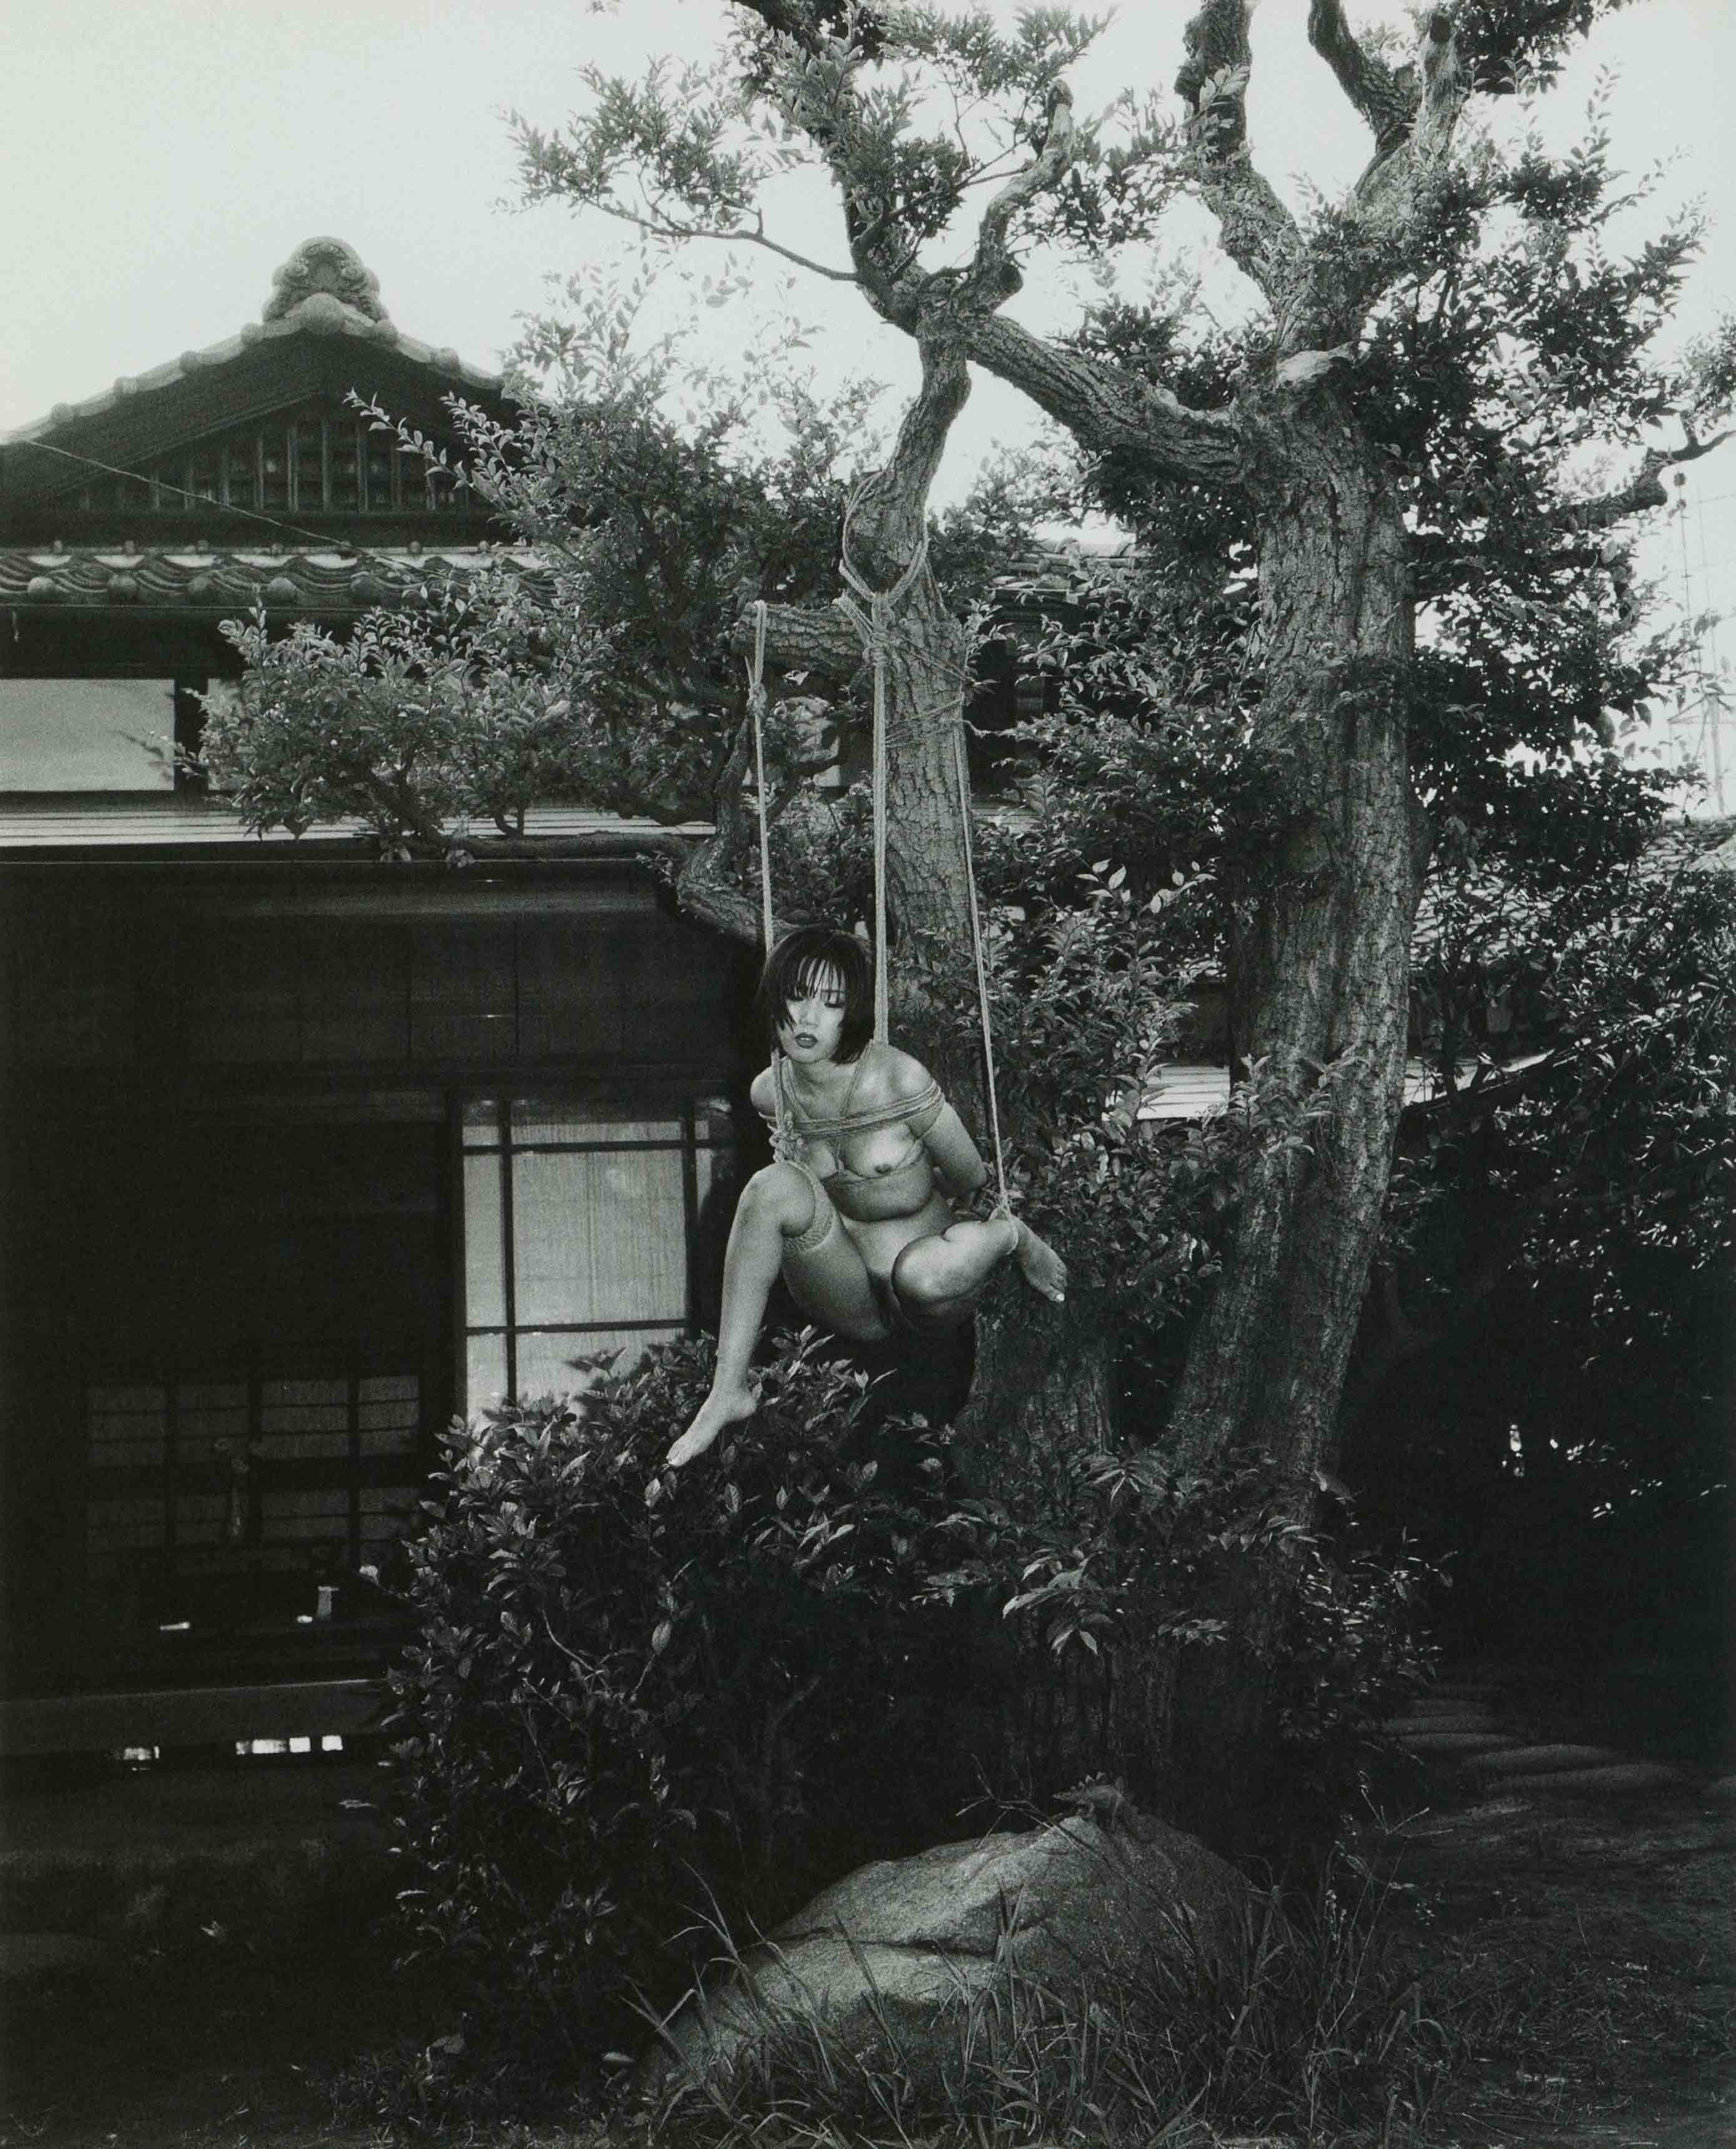 Nobuyoshi Araki_Personal Sentimentalism in Photography, 2000, Private Collection, New York